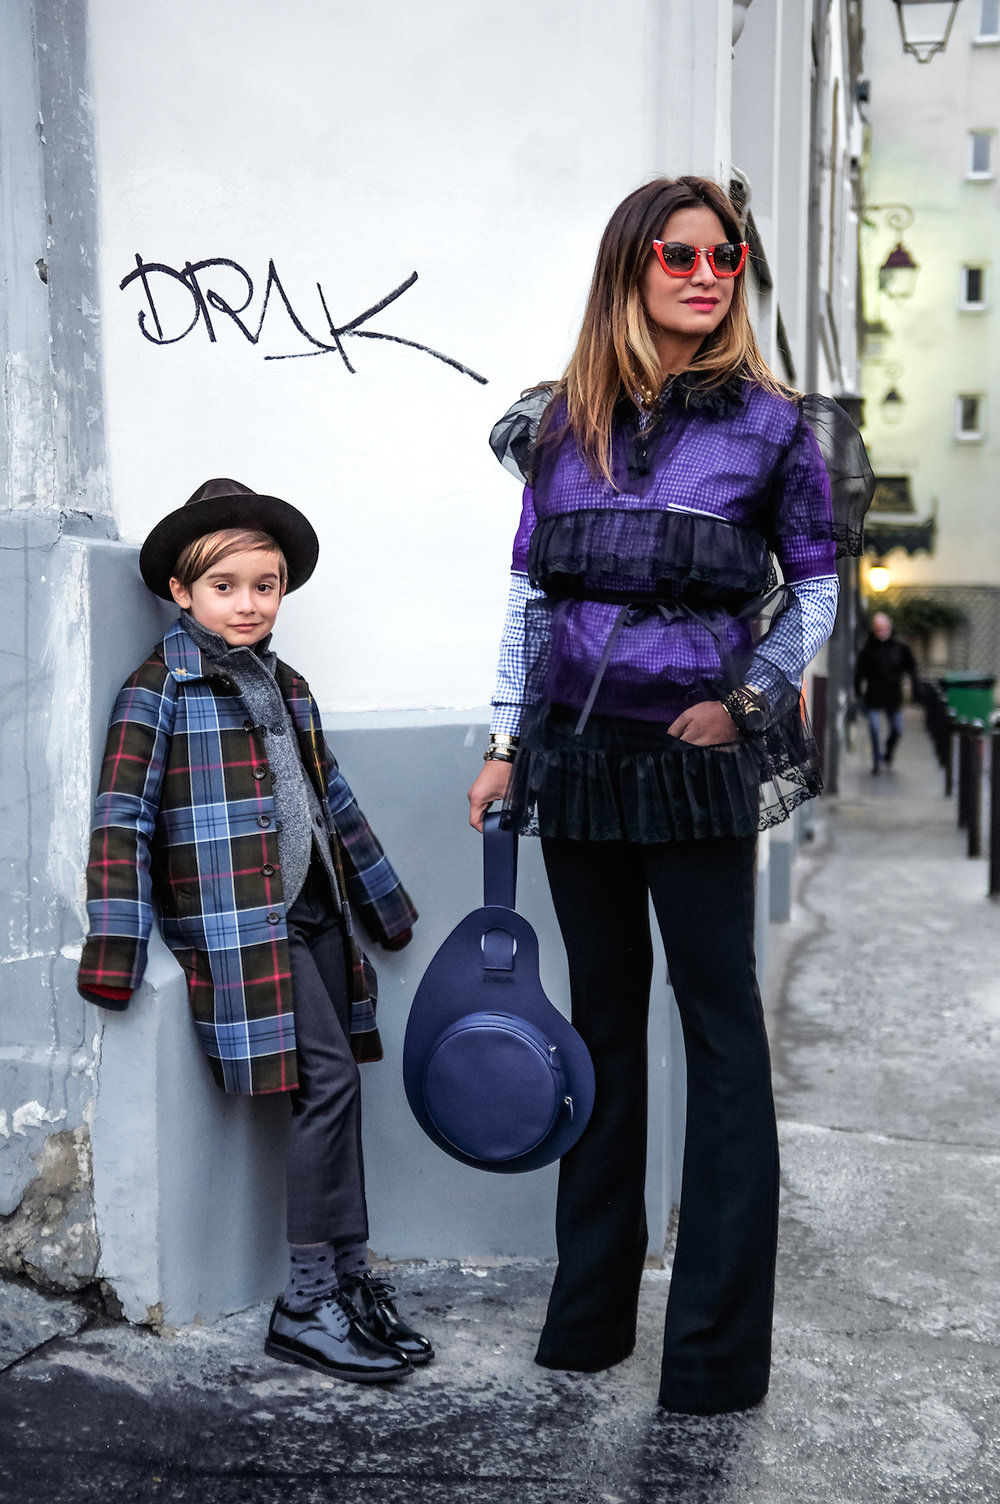 alonso_mateo_kids_fashion_felicidad_de_lucas_photographer_013.jpg